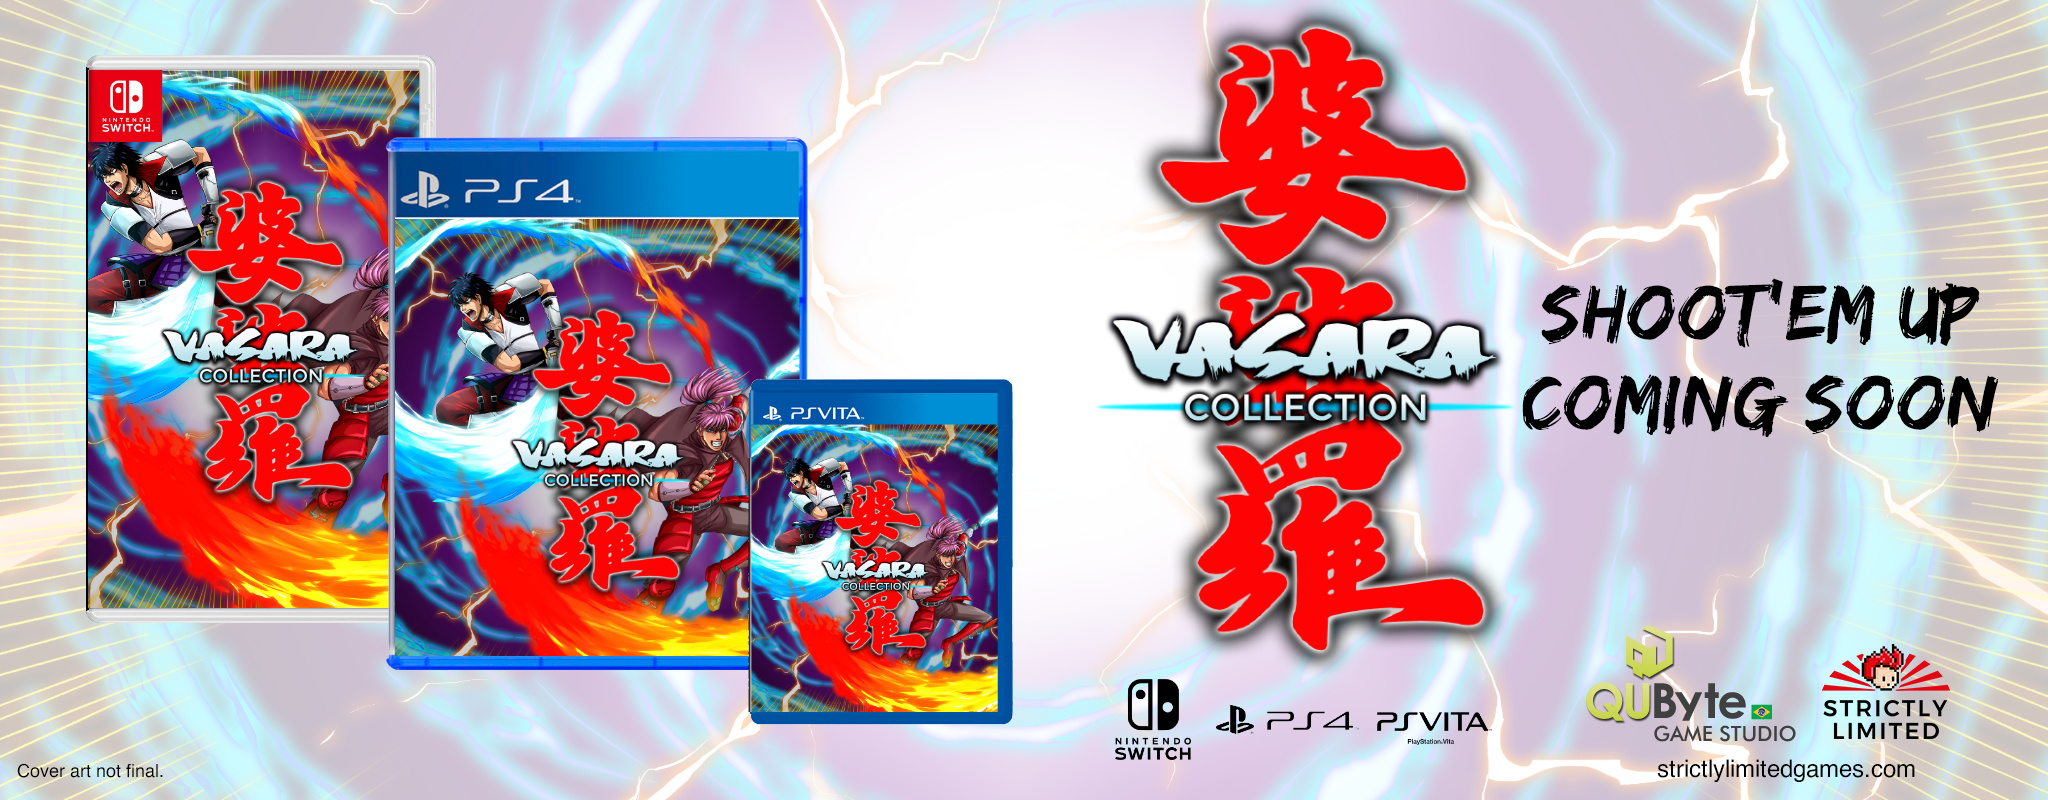 Shoot 'Em Up Bundle Vasara Collection Is Getting A ...